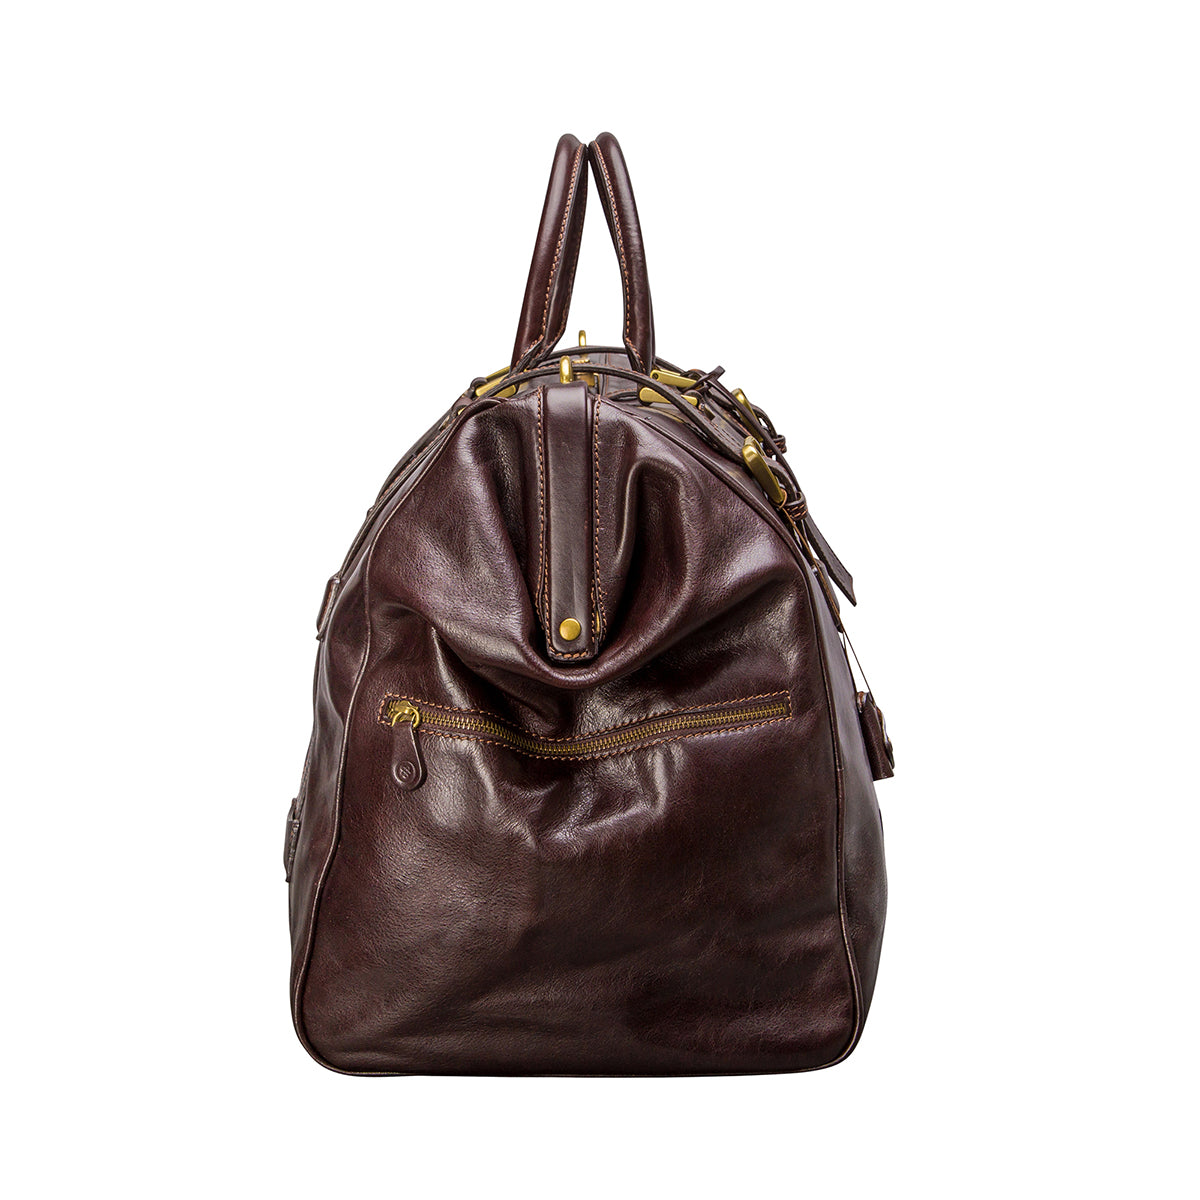 Image 3 of the 'Gassano L' Dark Chocolate Veg-Tanned Leather Holdall